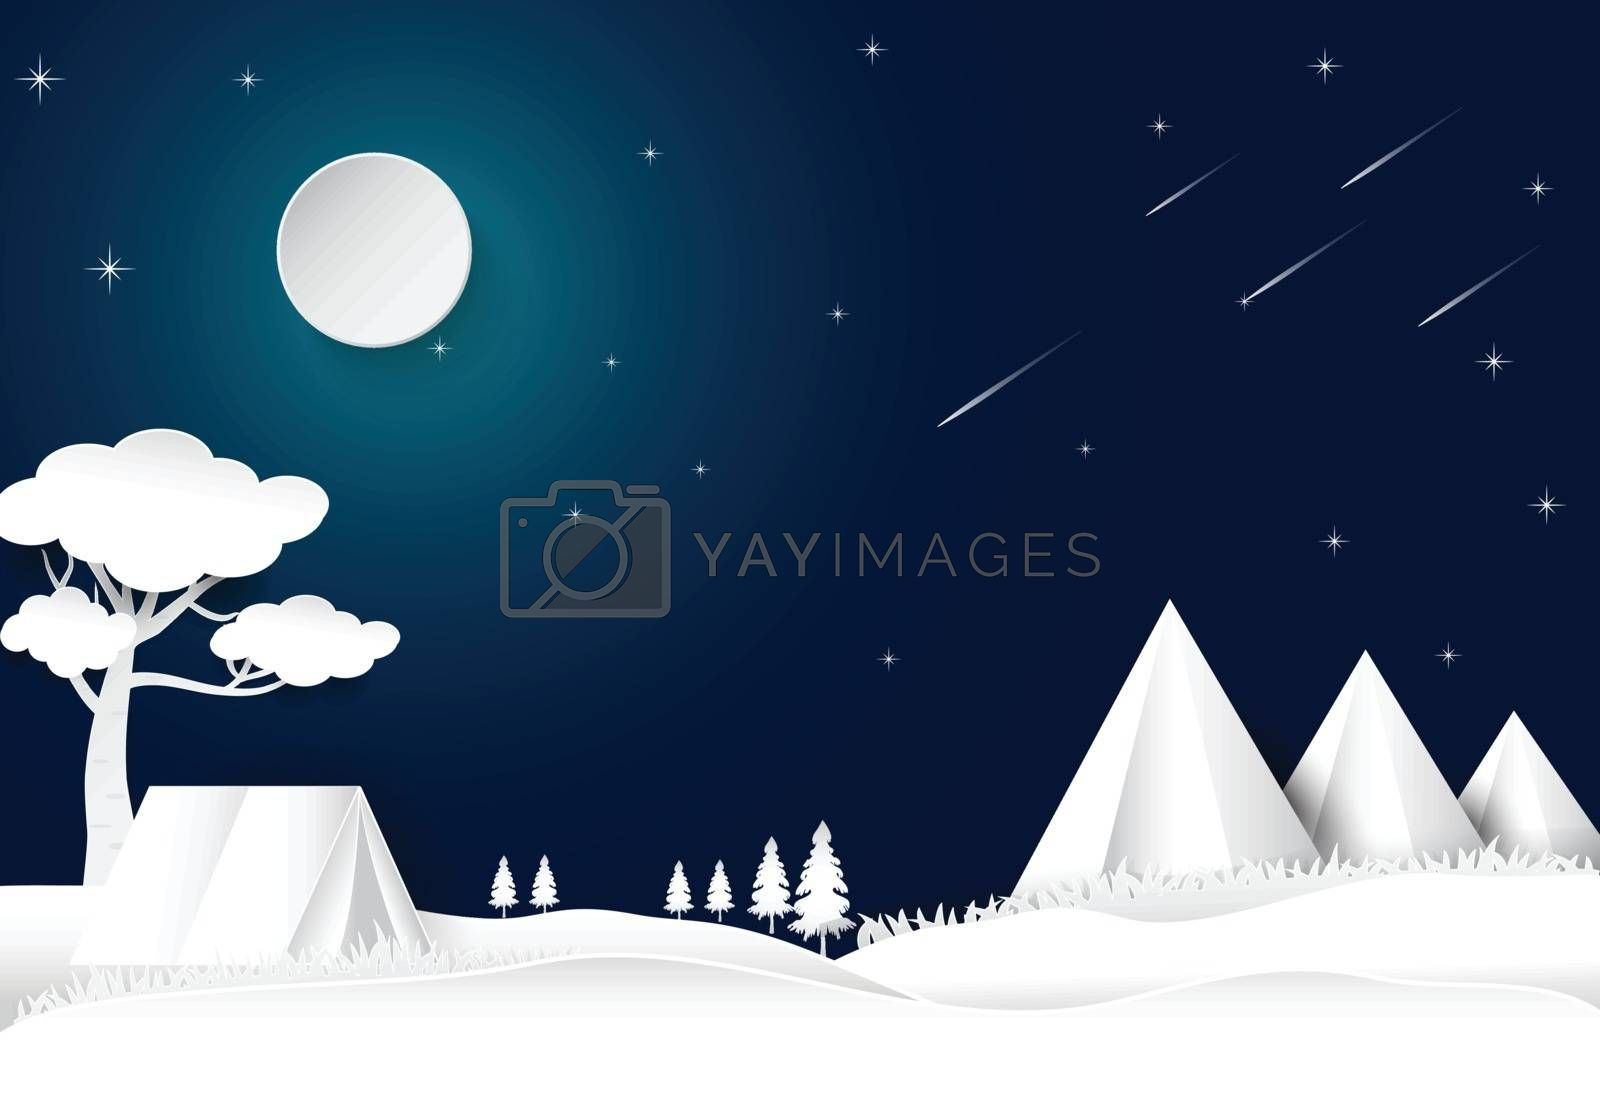 Camping on hill night sky with star and comet, landscape background, paper art style illustration